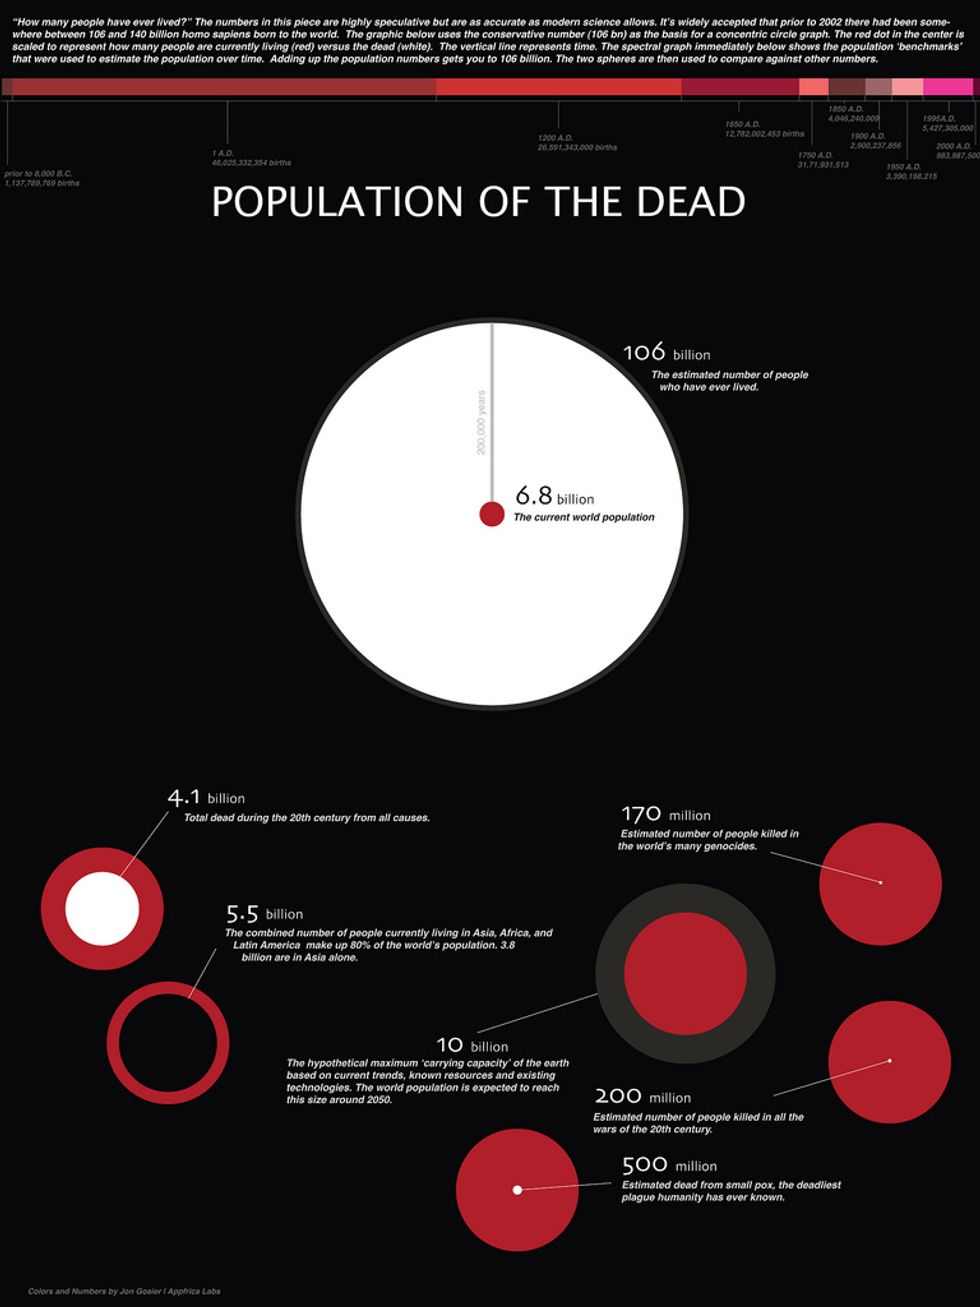 The Population of the Dead: How Many People Have Ever Lived?